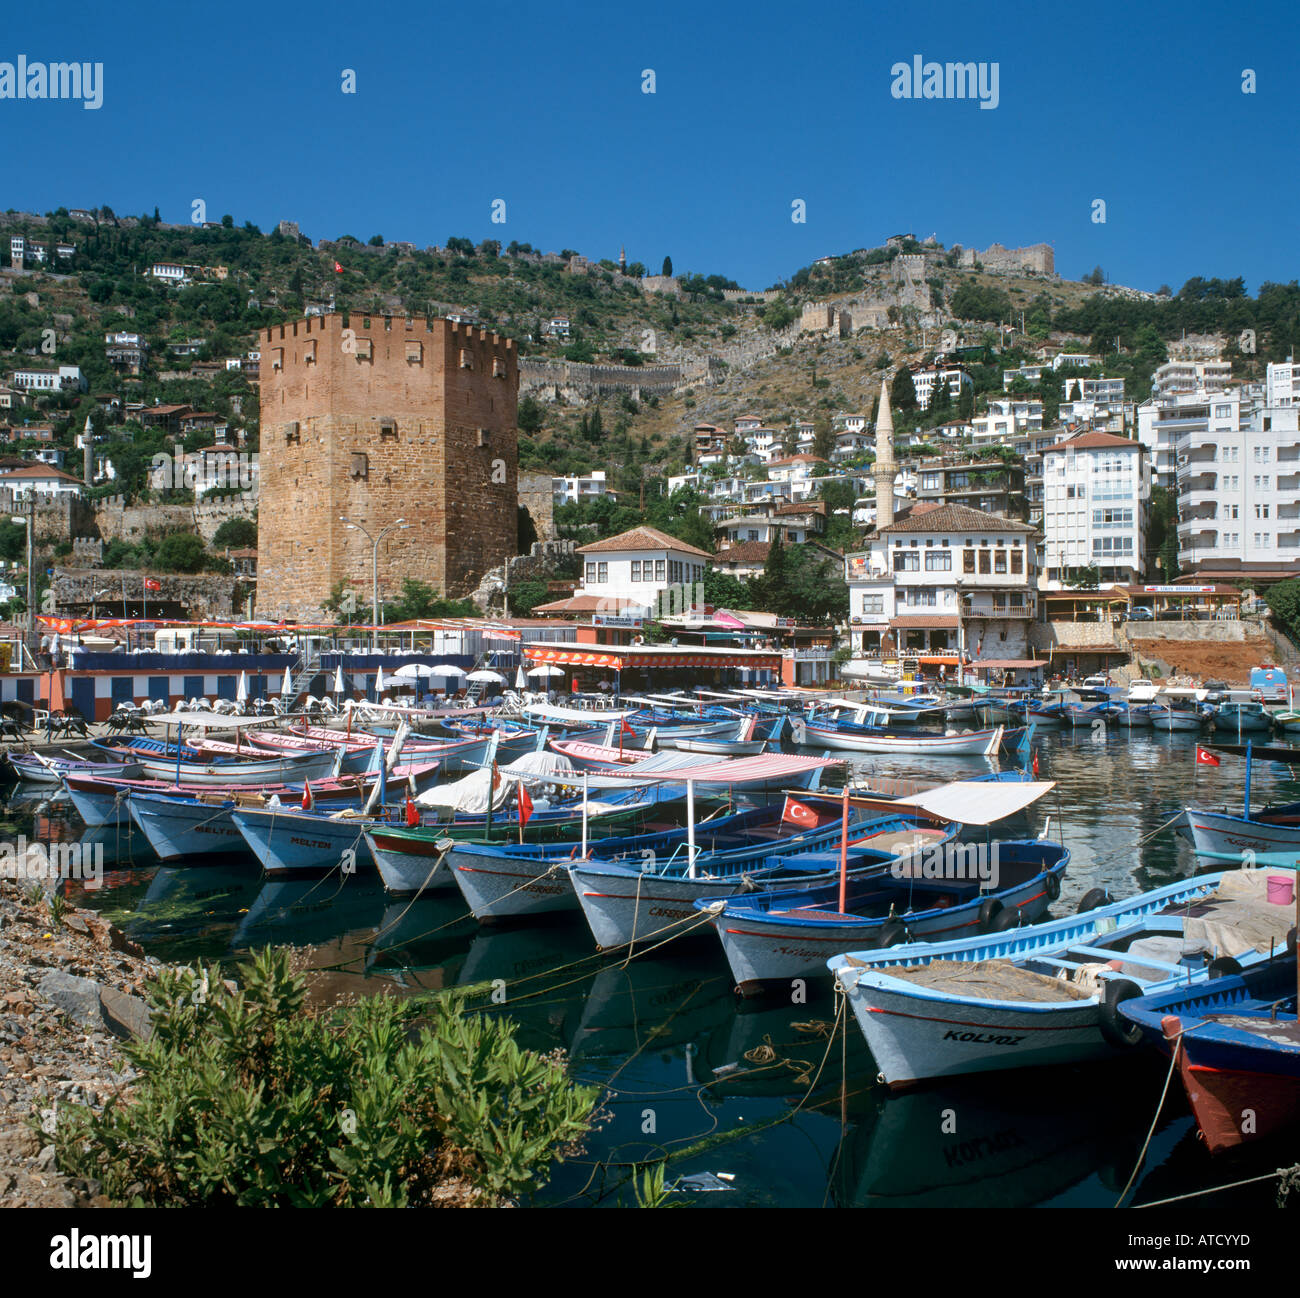 Harbour and Red Tower (Kisil Kule) with the Castle behind, Alanya, Mediterranean Coast, Turkey - Stock Image